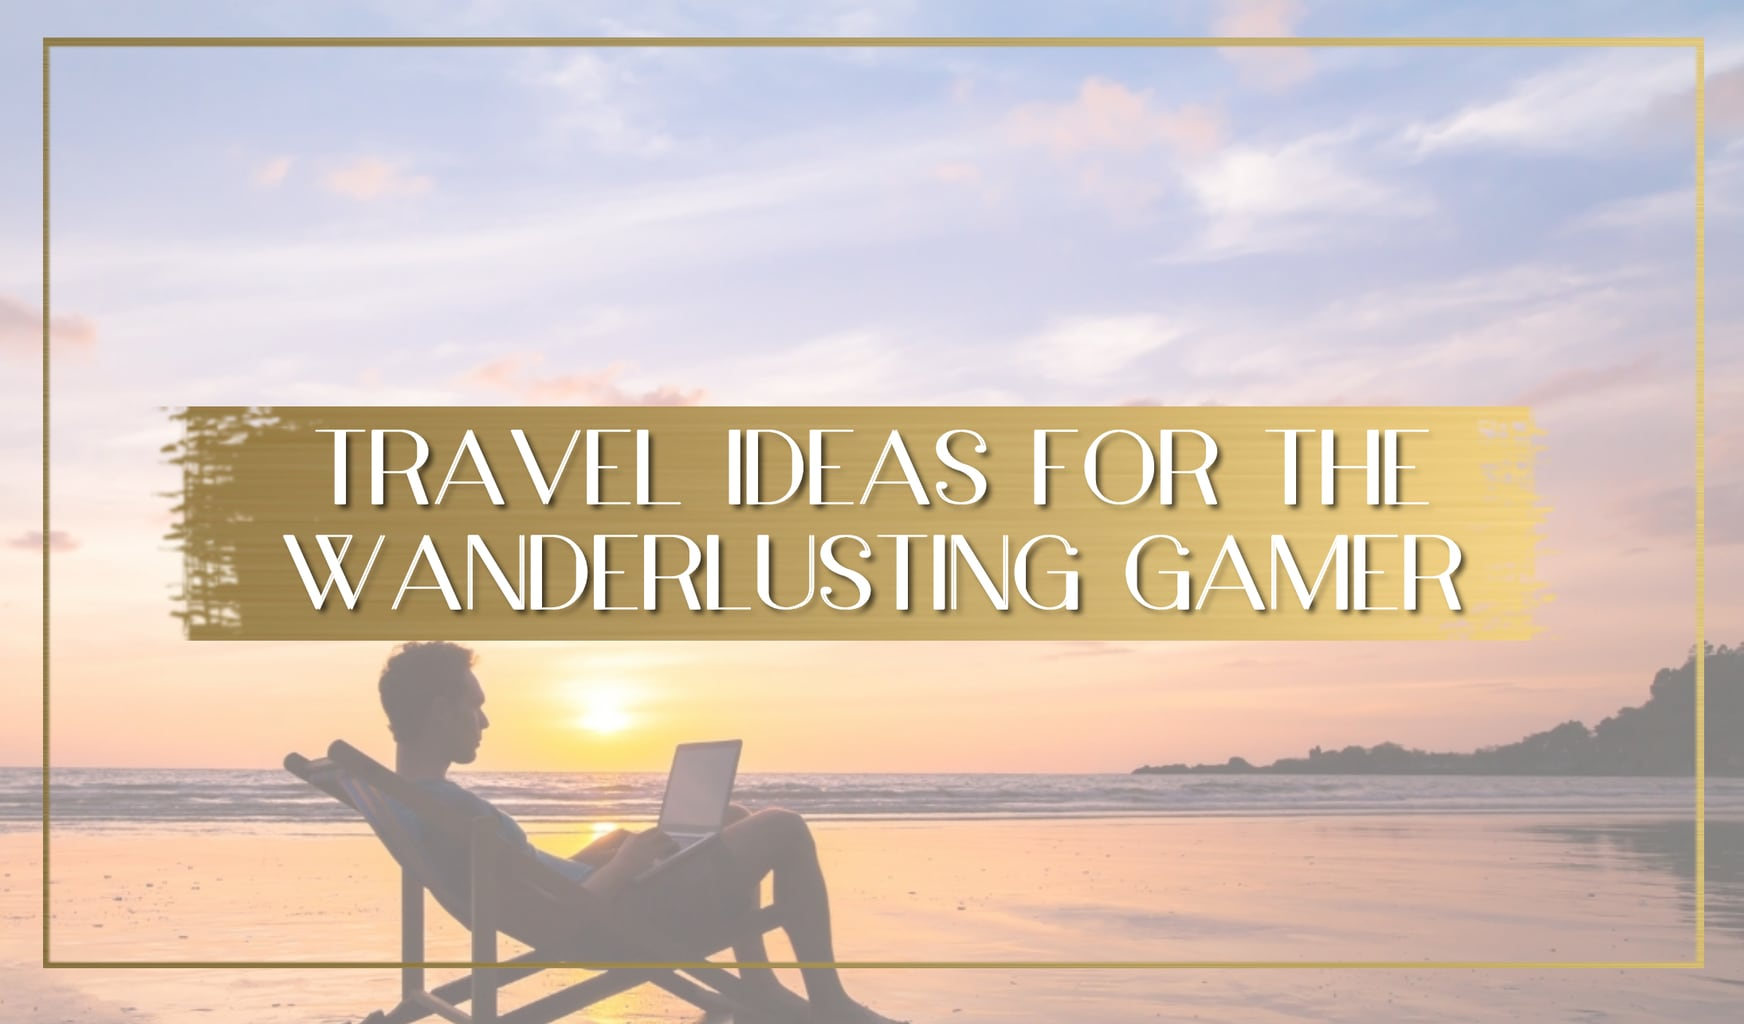 Travelling Ideas for the Wanderlusting Gamer main